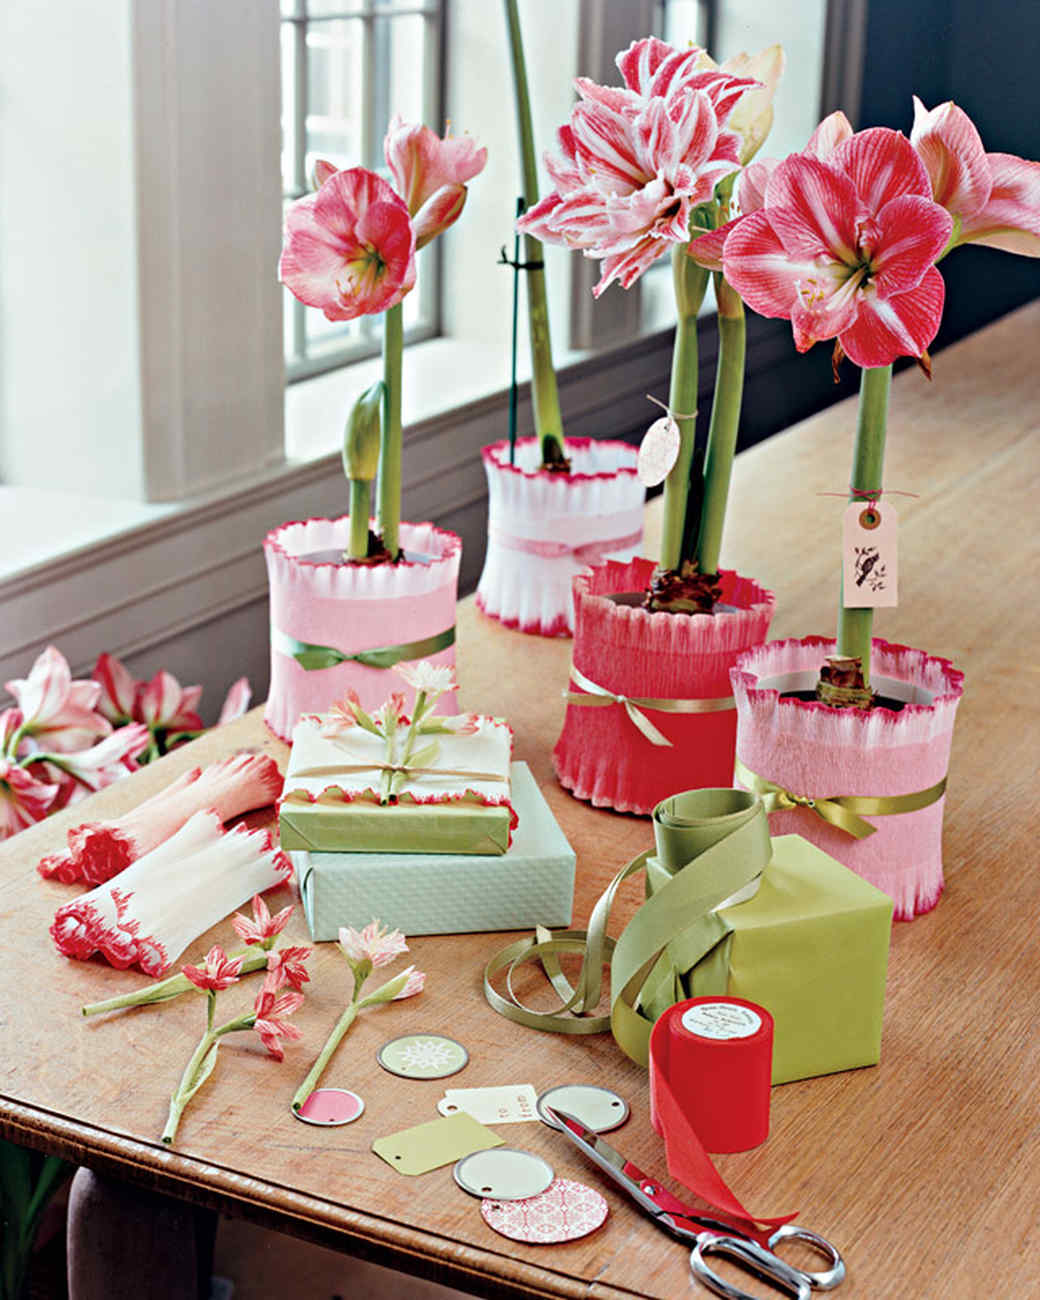 table of amaryllis flowers being prepped for gifting